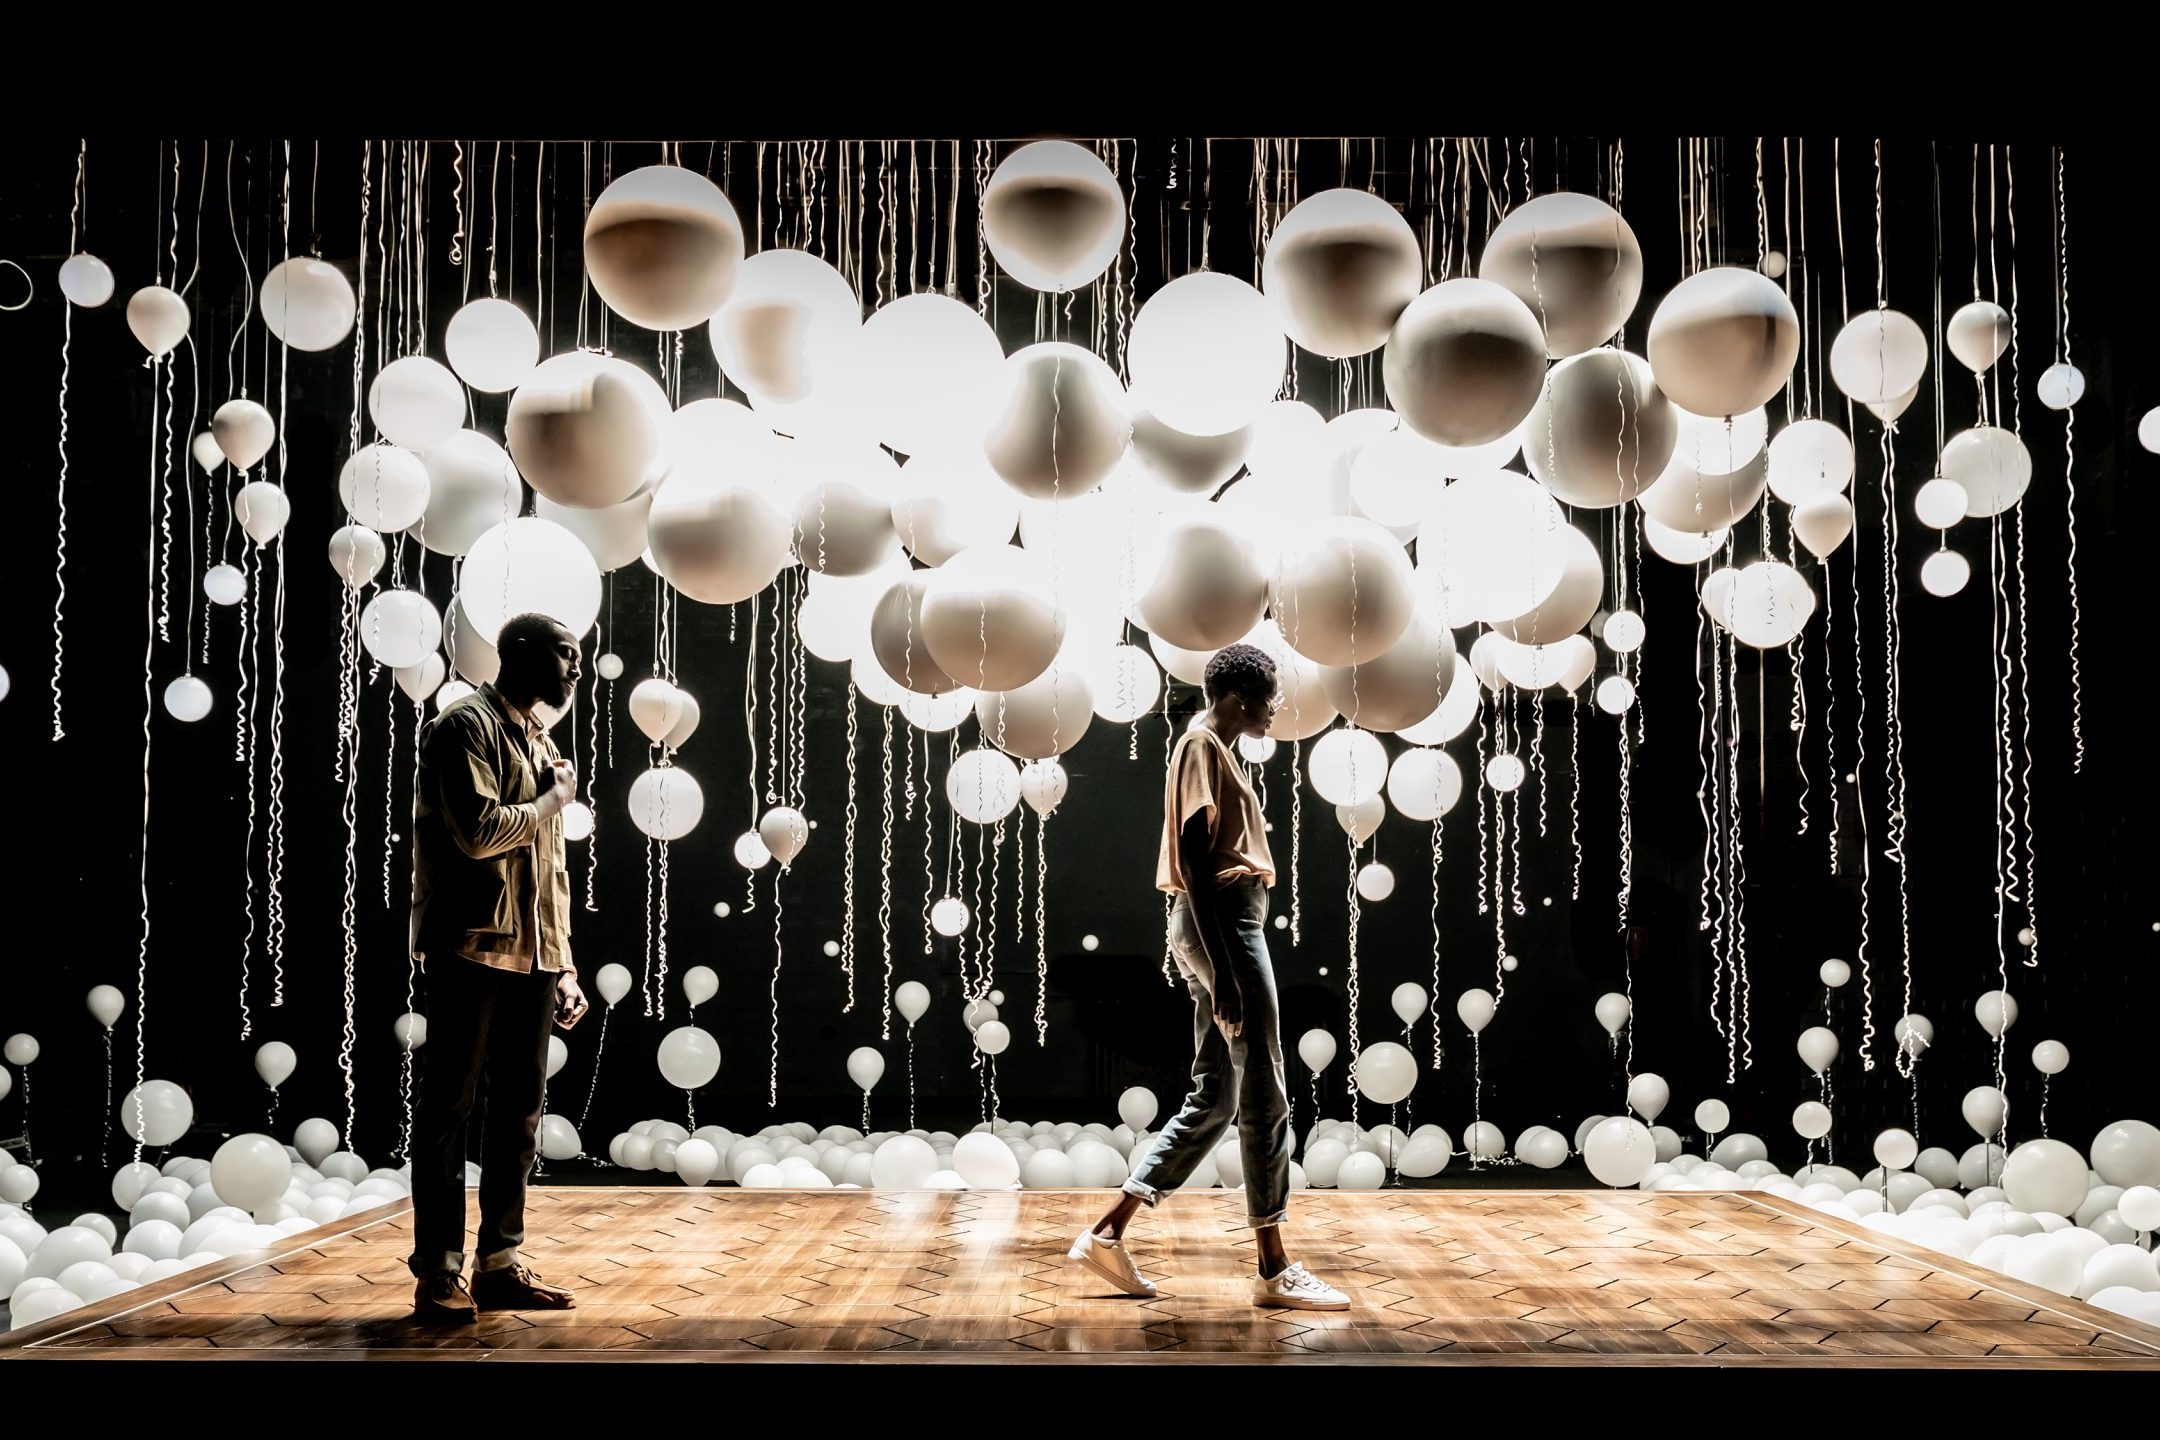 Two figures on a stage with white balloons floating above them